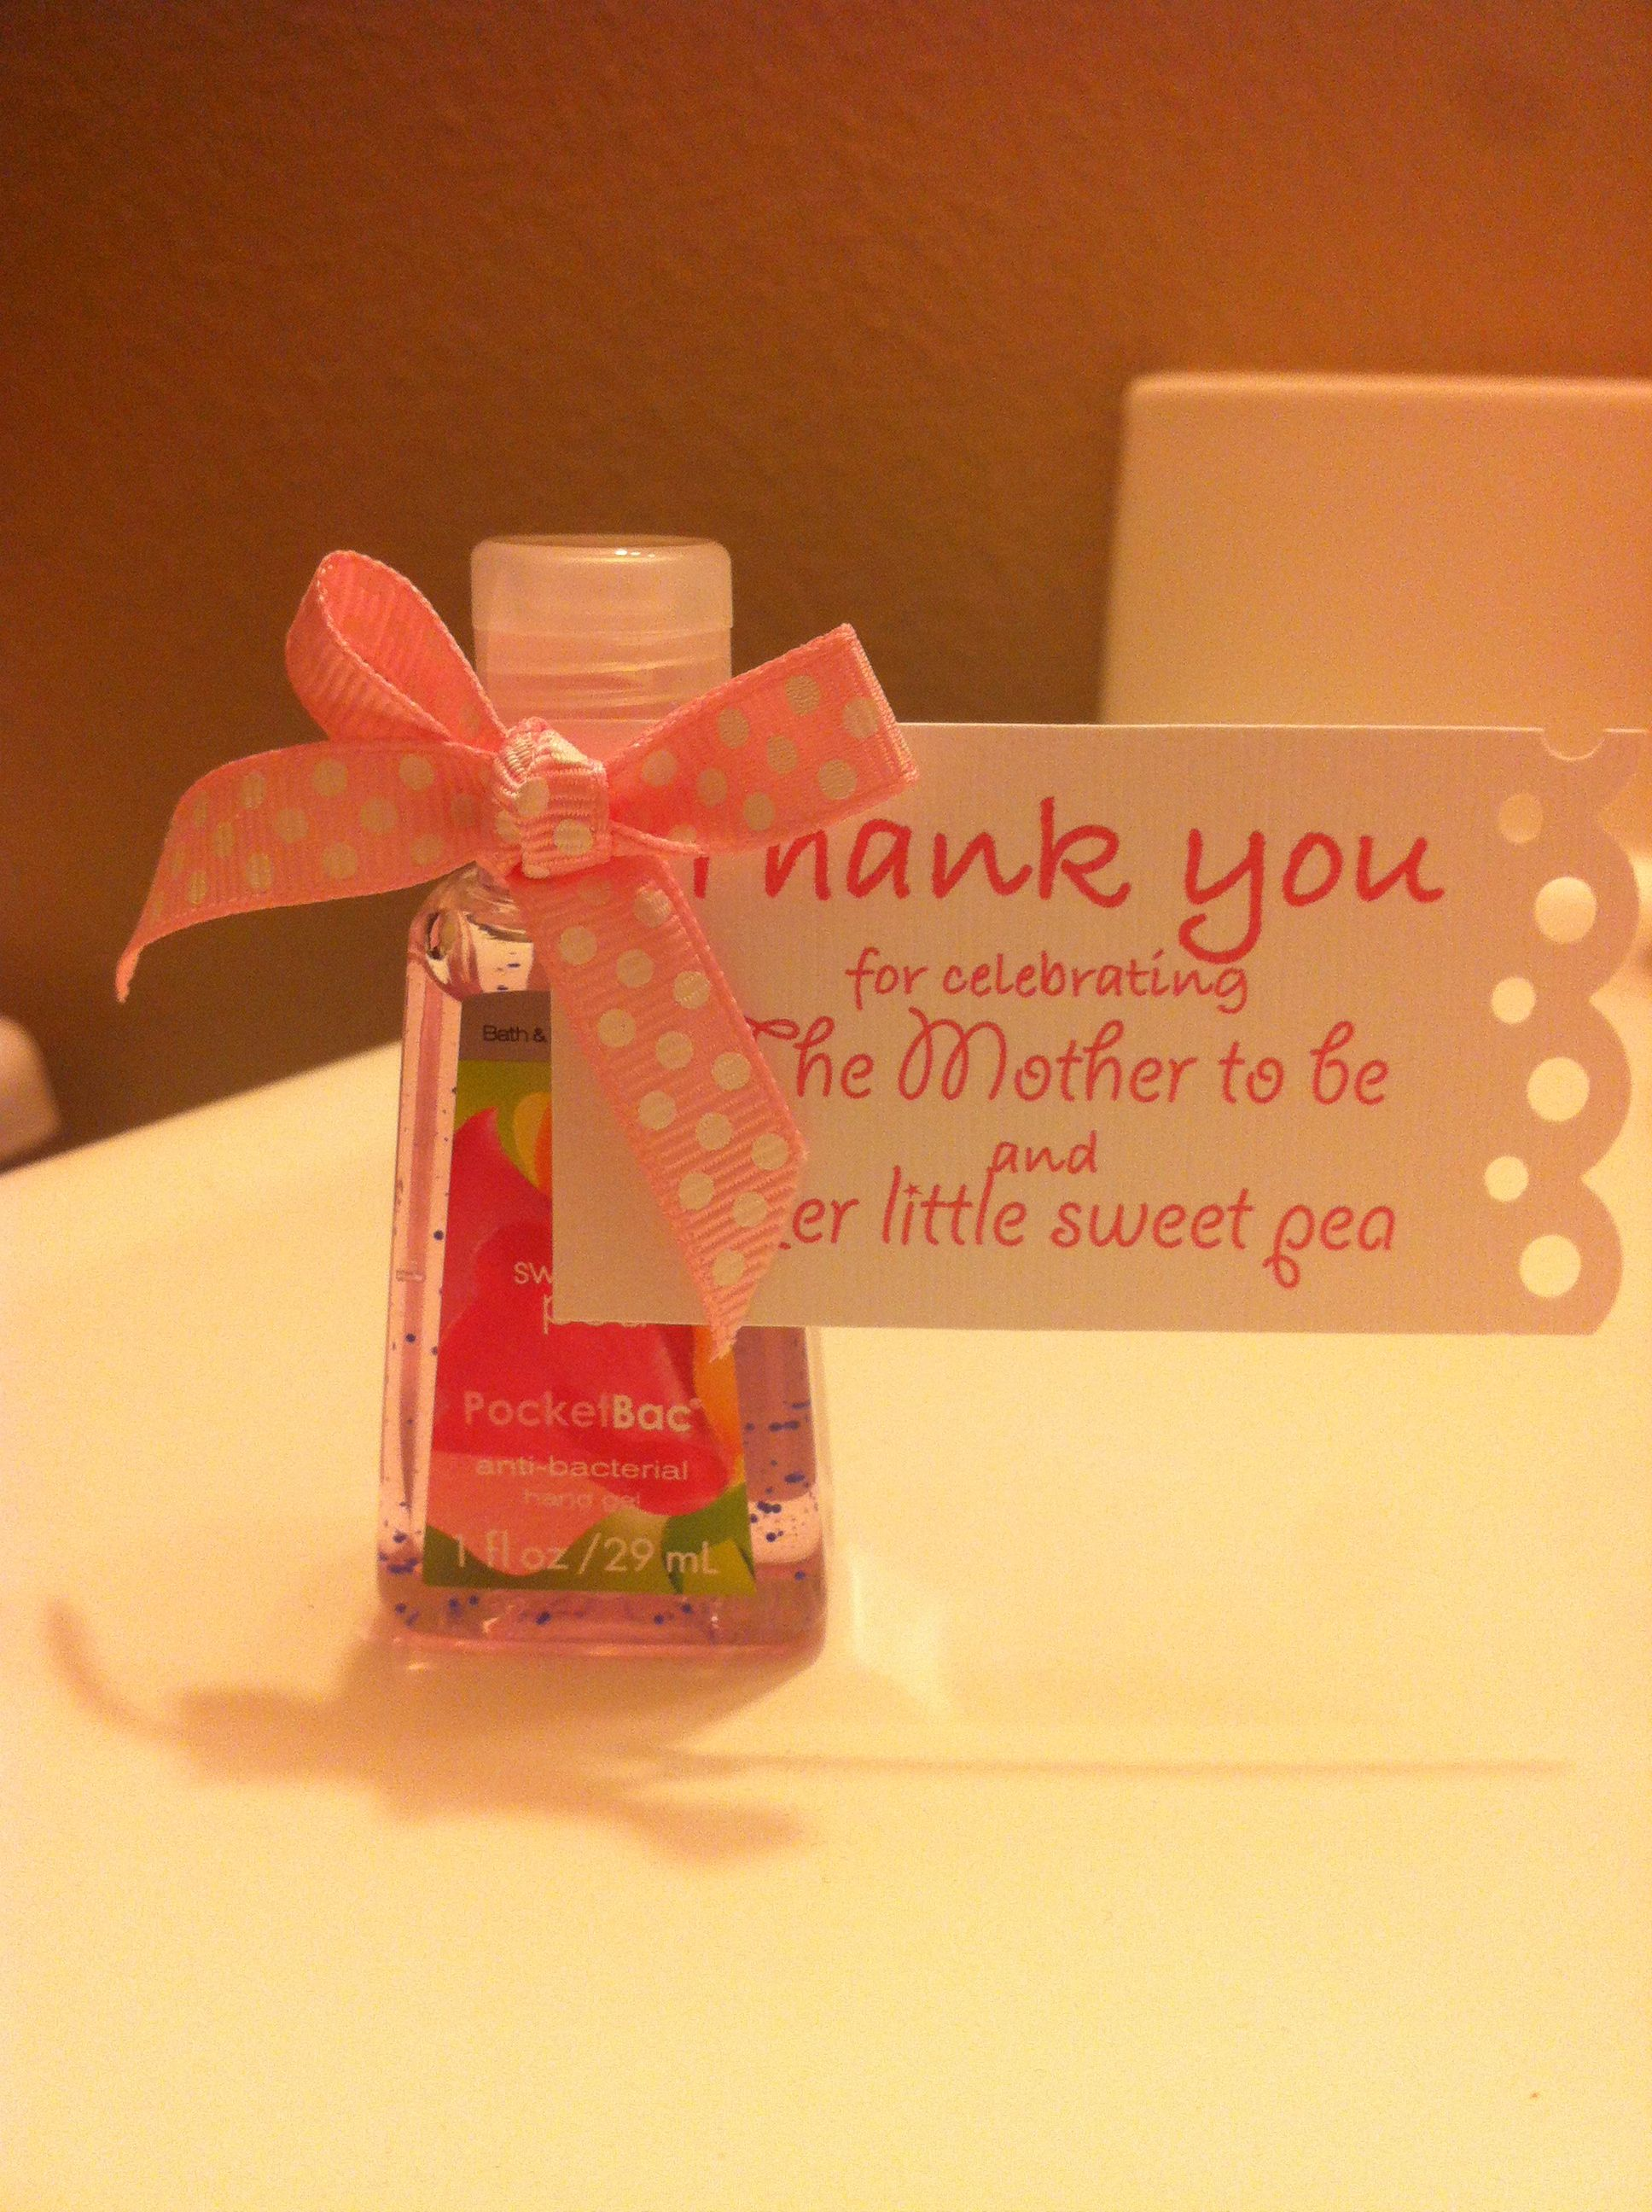 From Our Little Sweet Pea In Sweet Pea Scent So Cute Can